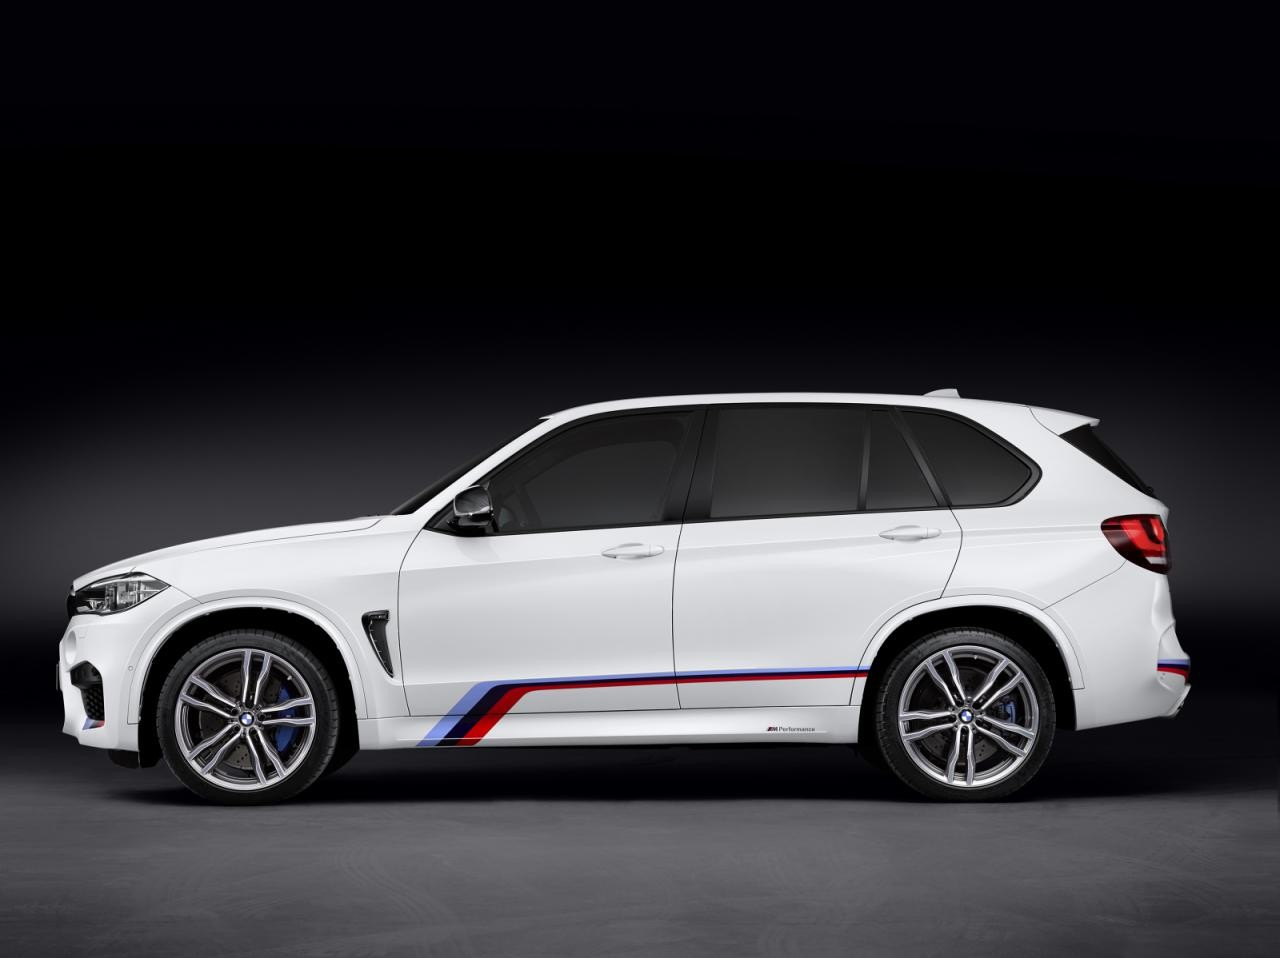 bmw m performance accessories announced for x5 m x6 m. Black Bedroom Furniture Sets. Home Design Ideas